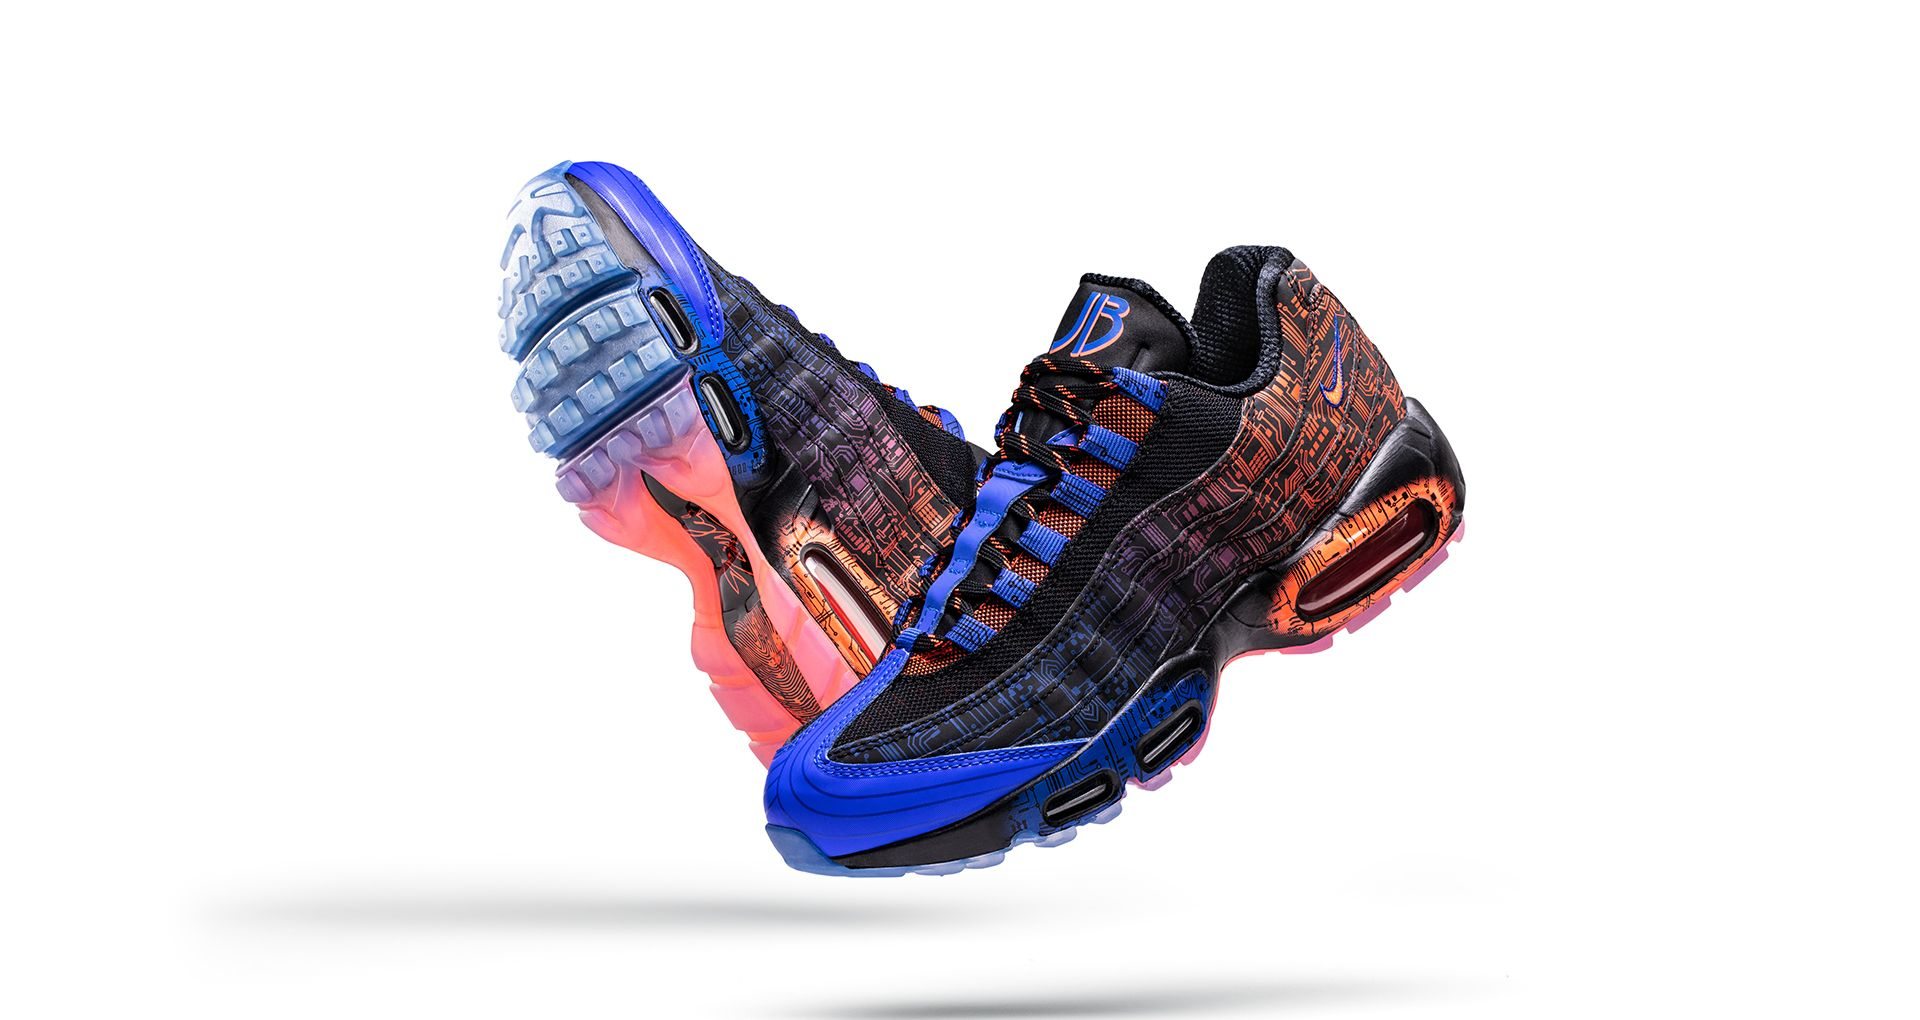 separation shoes 4f271 2eaf8 Air Max 95 Premium